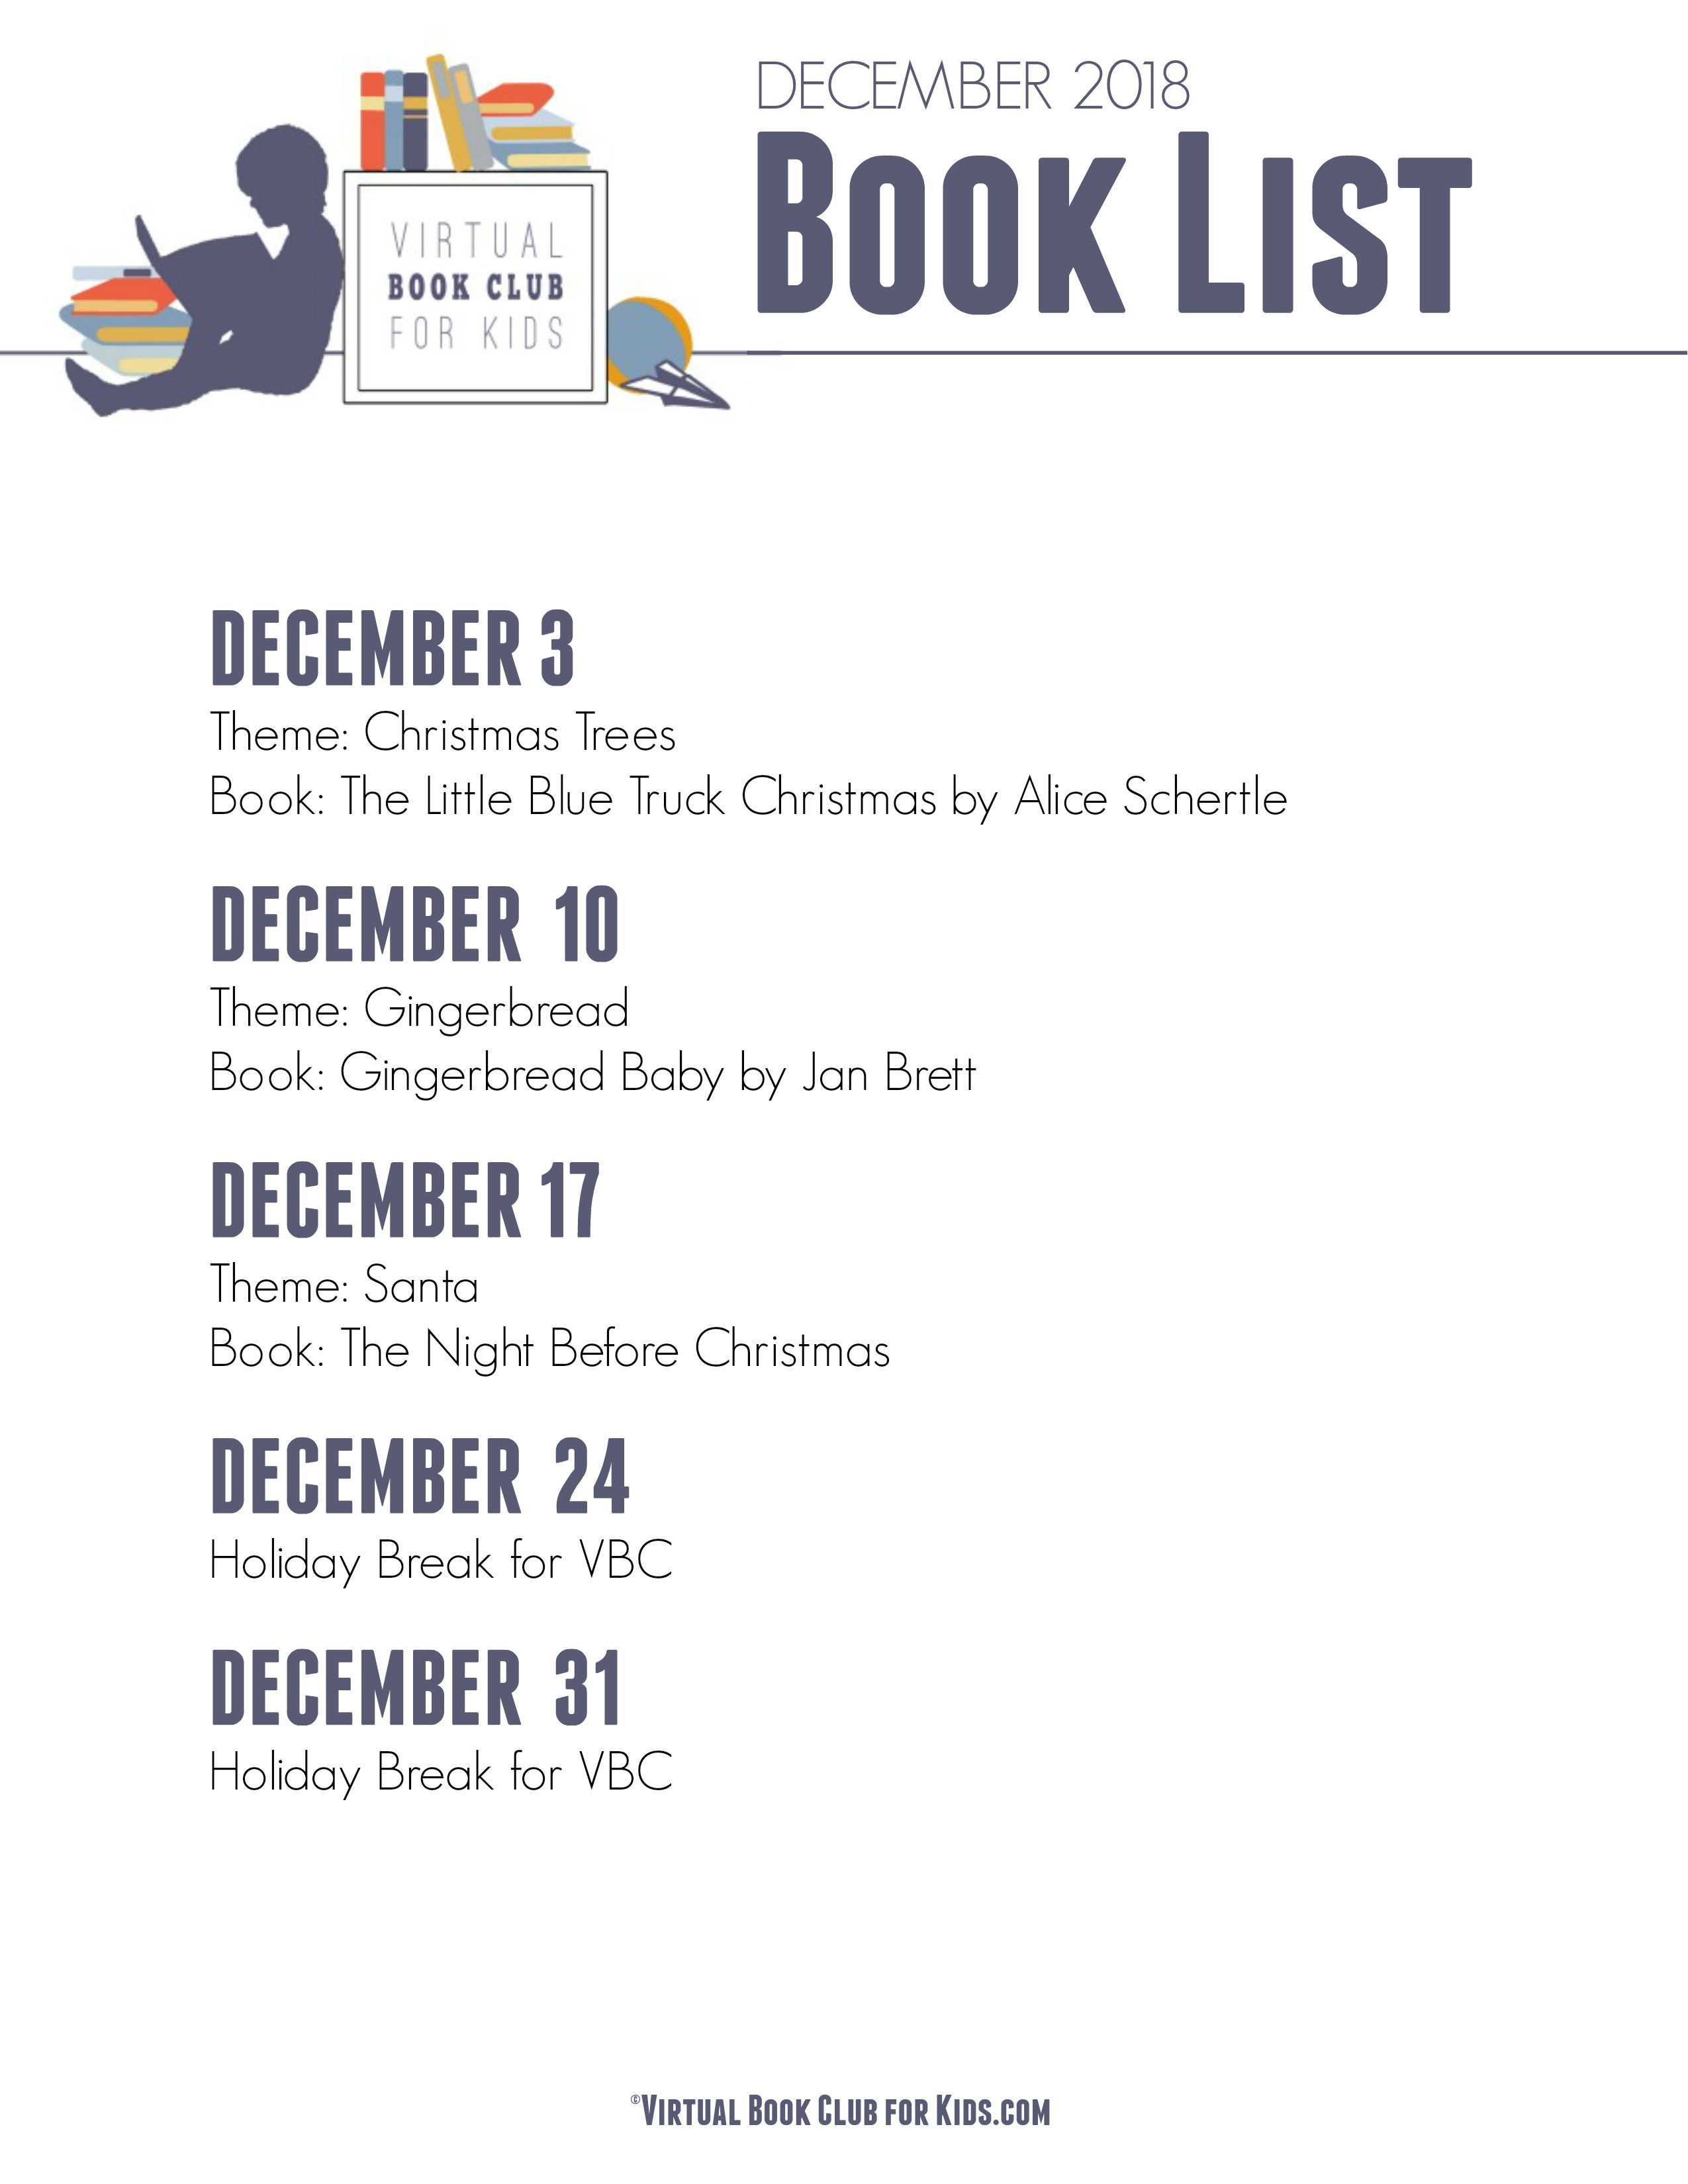 December Book List for Virtual Book Club for Kids 2018